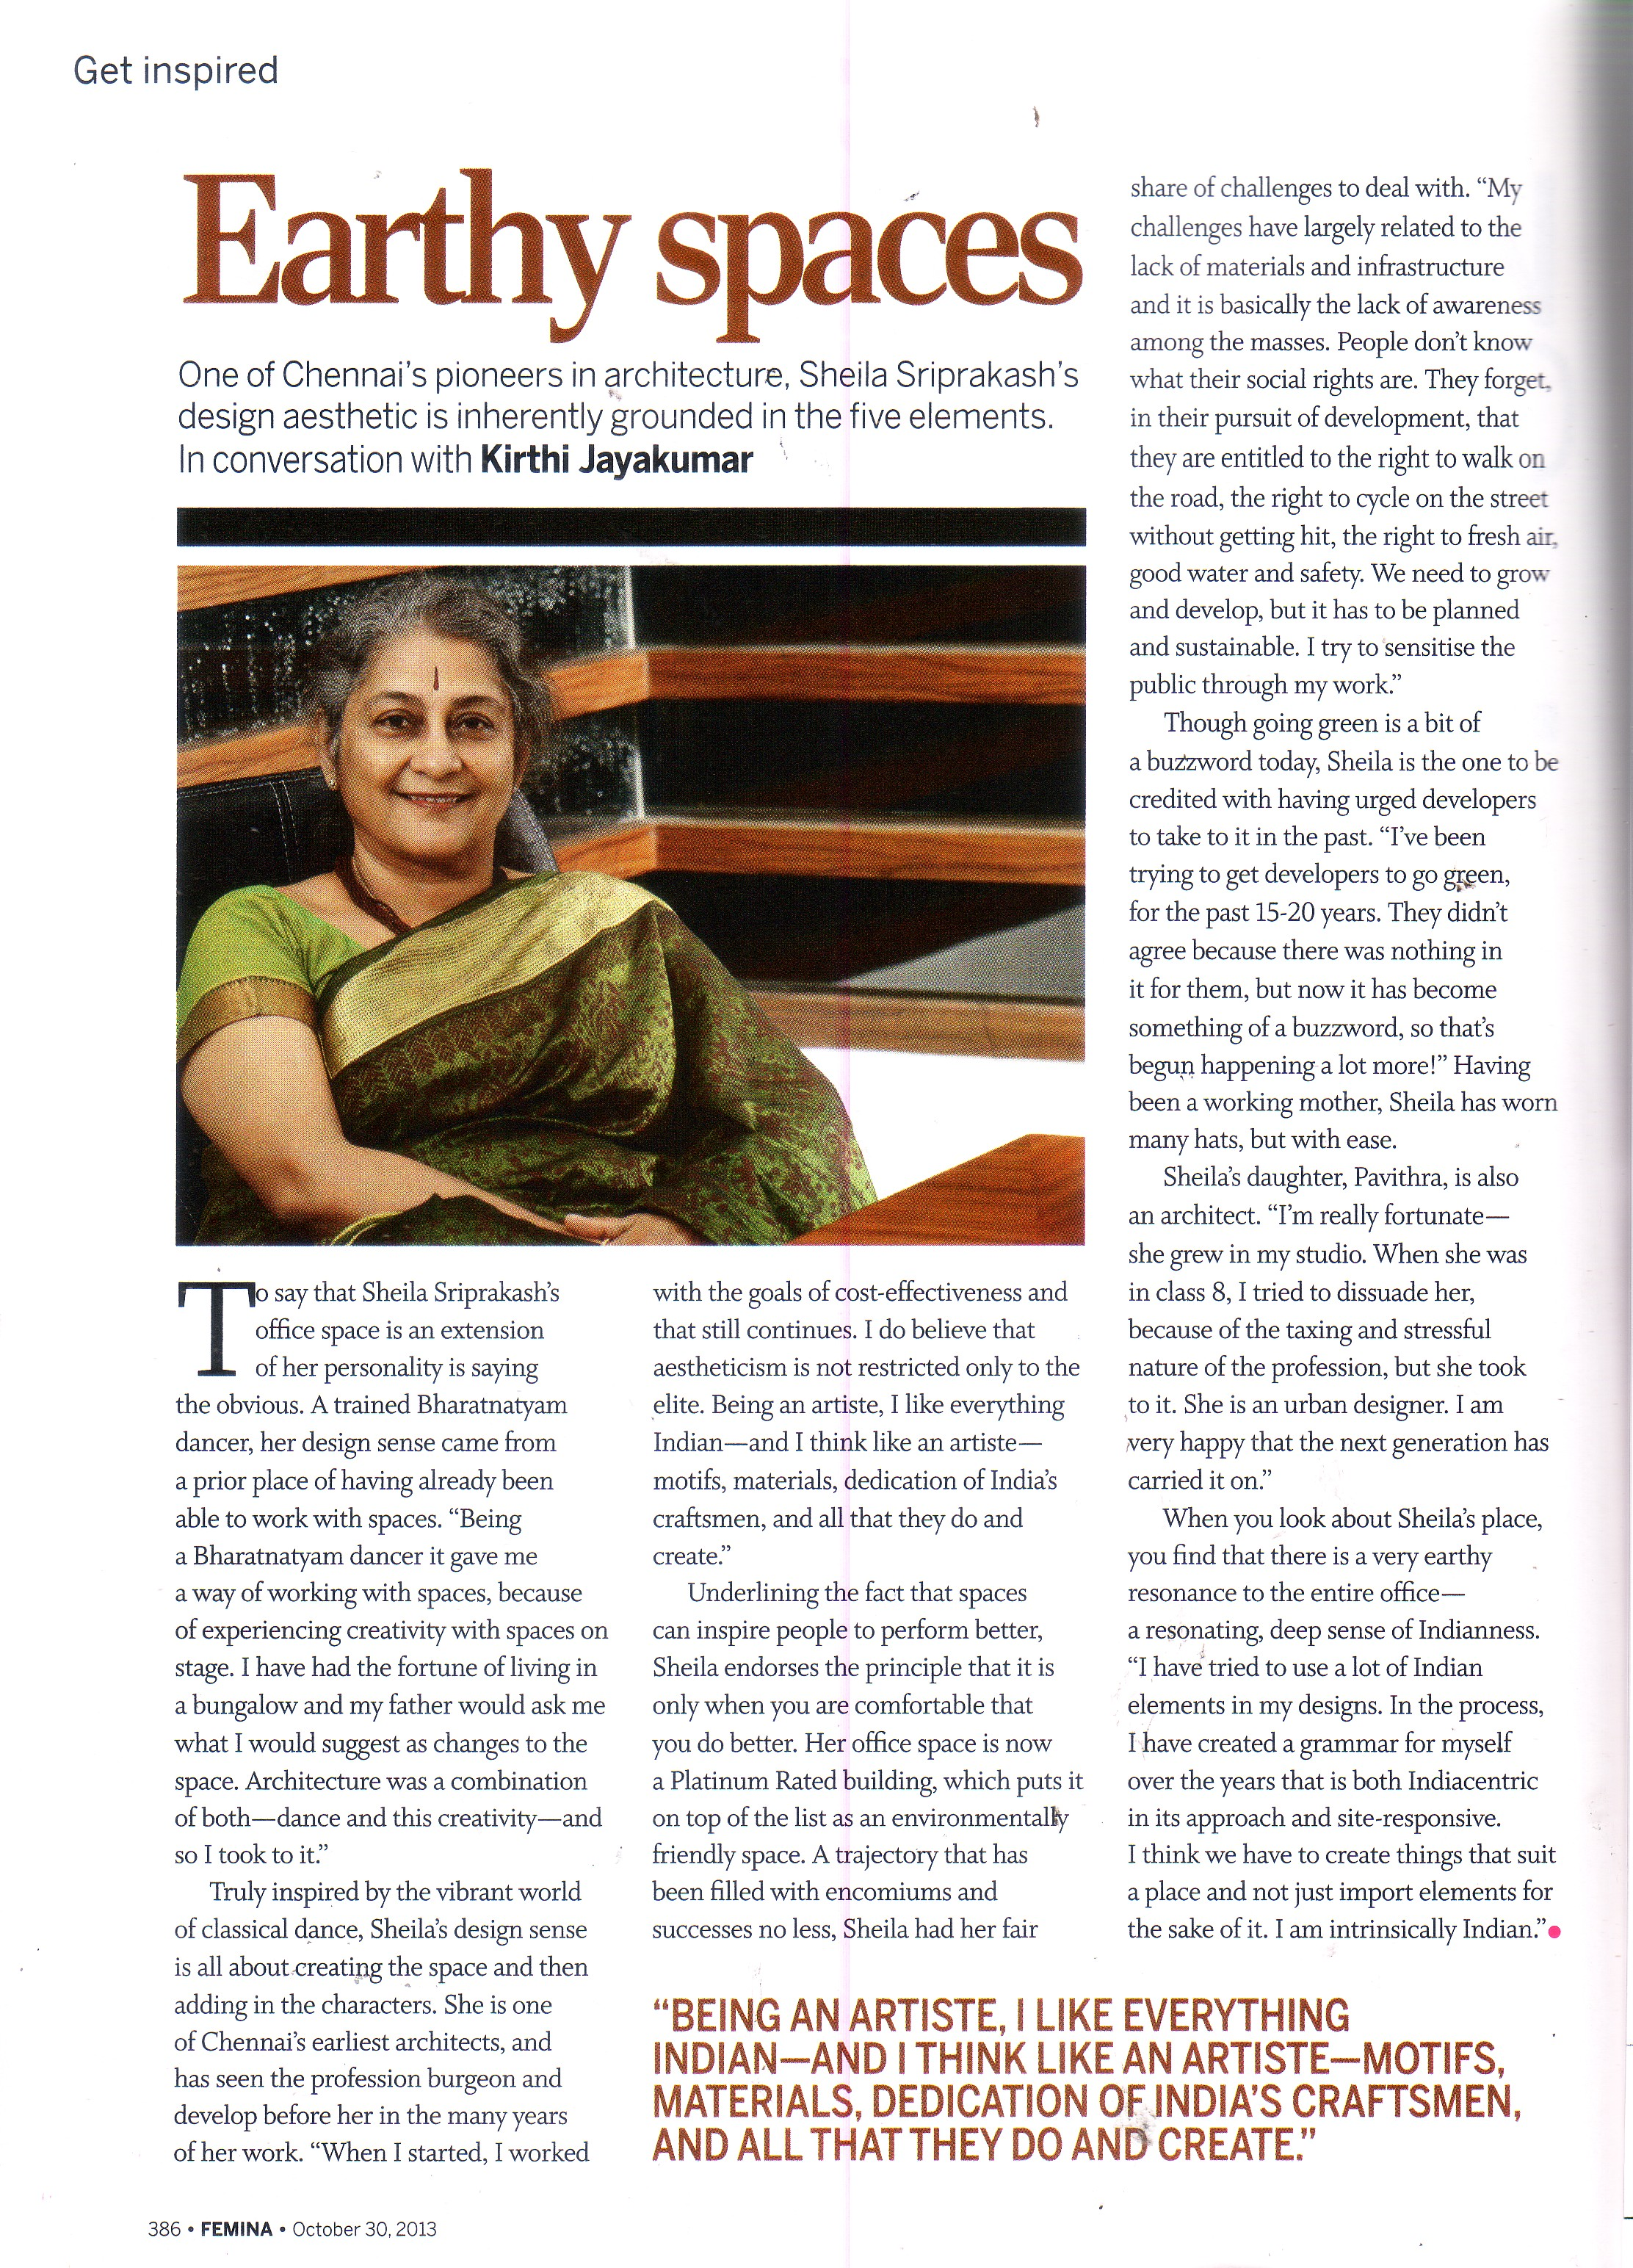 Femina, Oct 2013 – Earthy Spaces with Sheila Sri Prakash